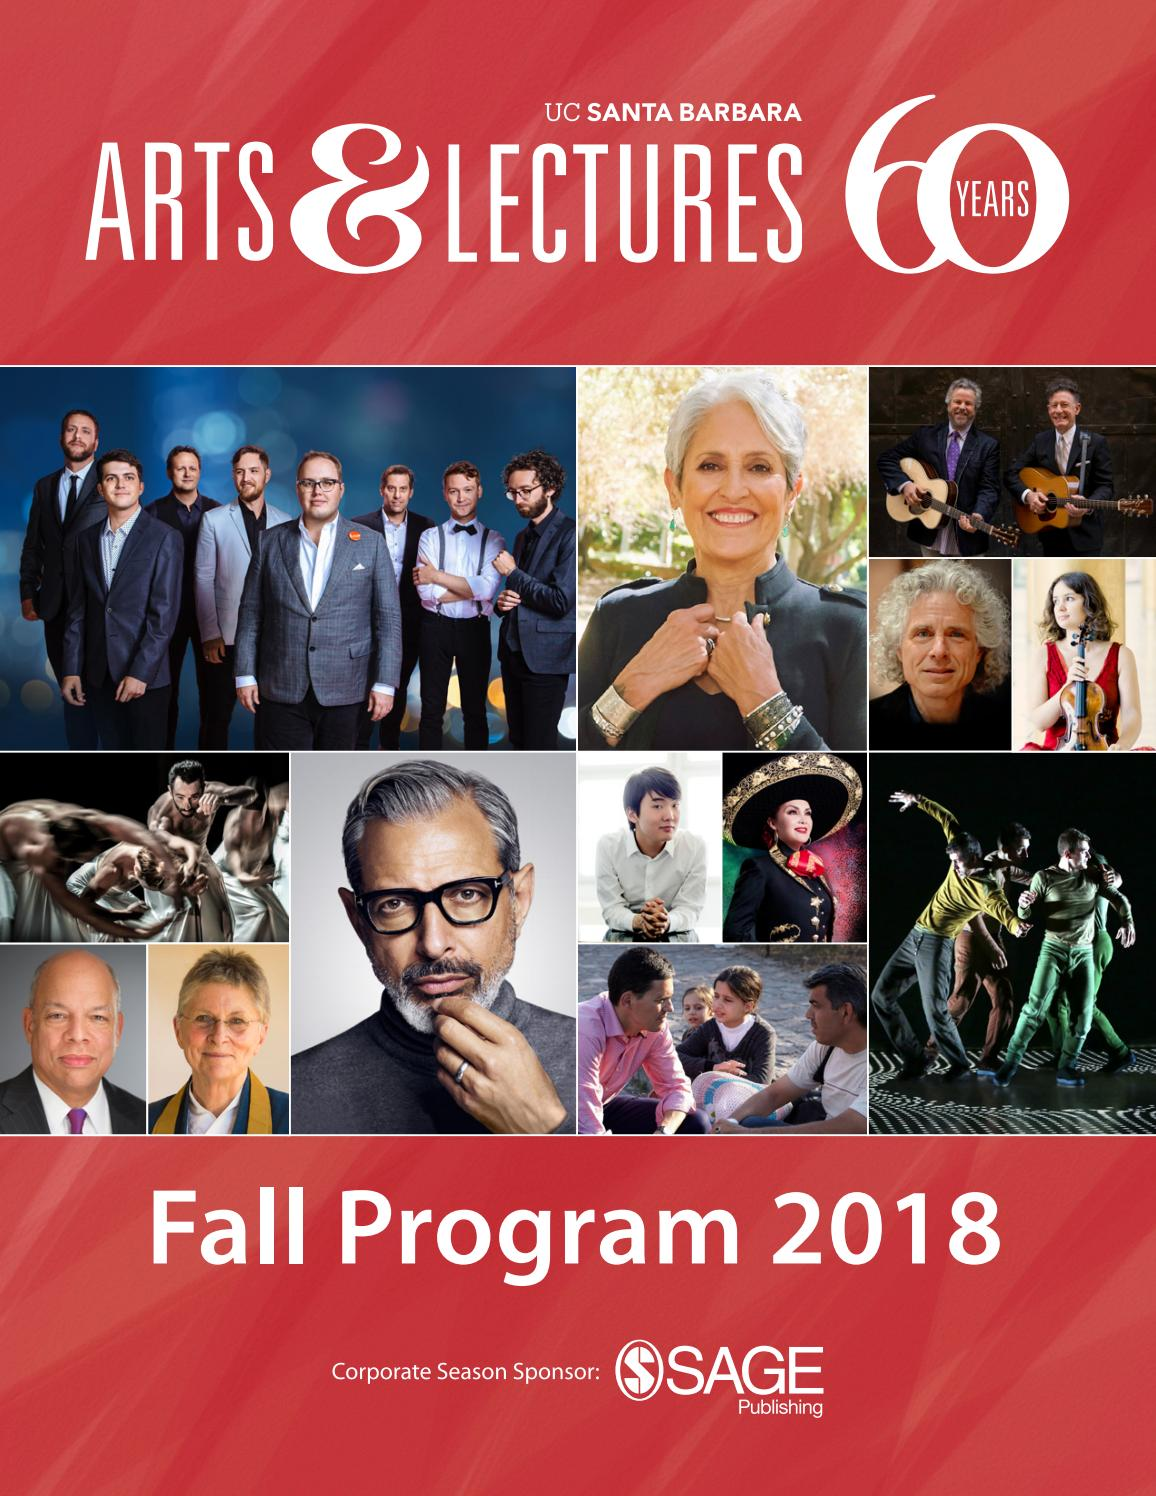 UCSB Arts & Lectures - Fall Program 2018 by UCSB Arts